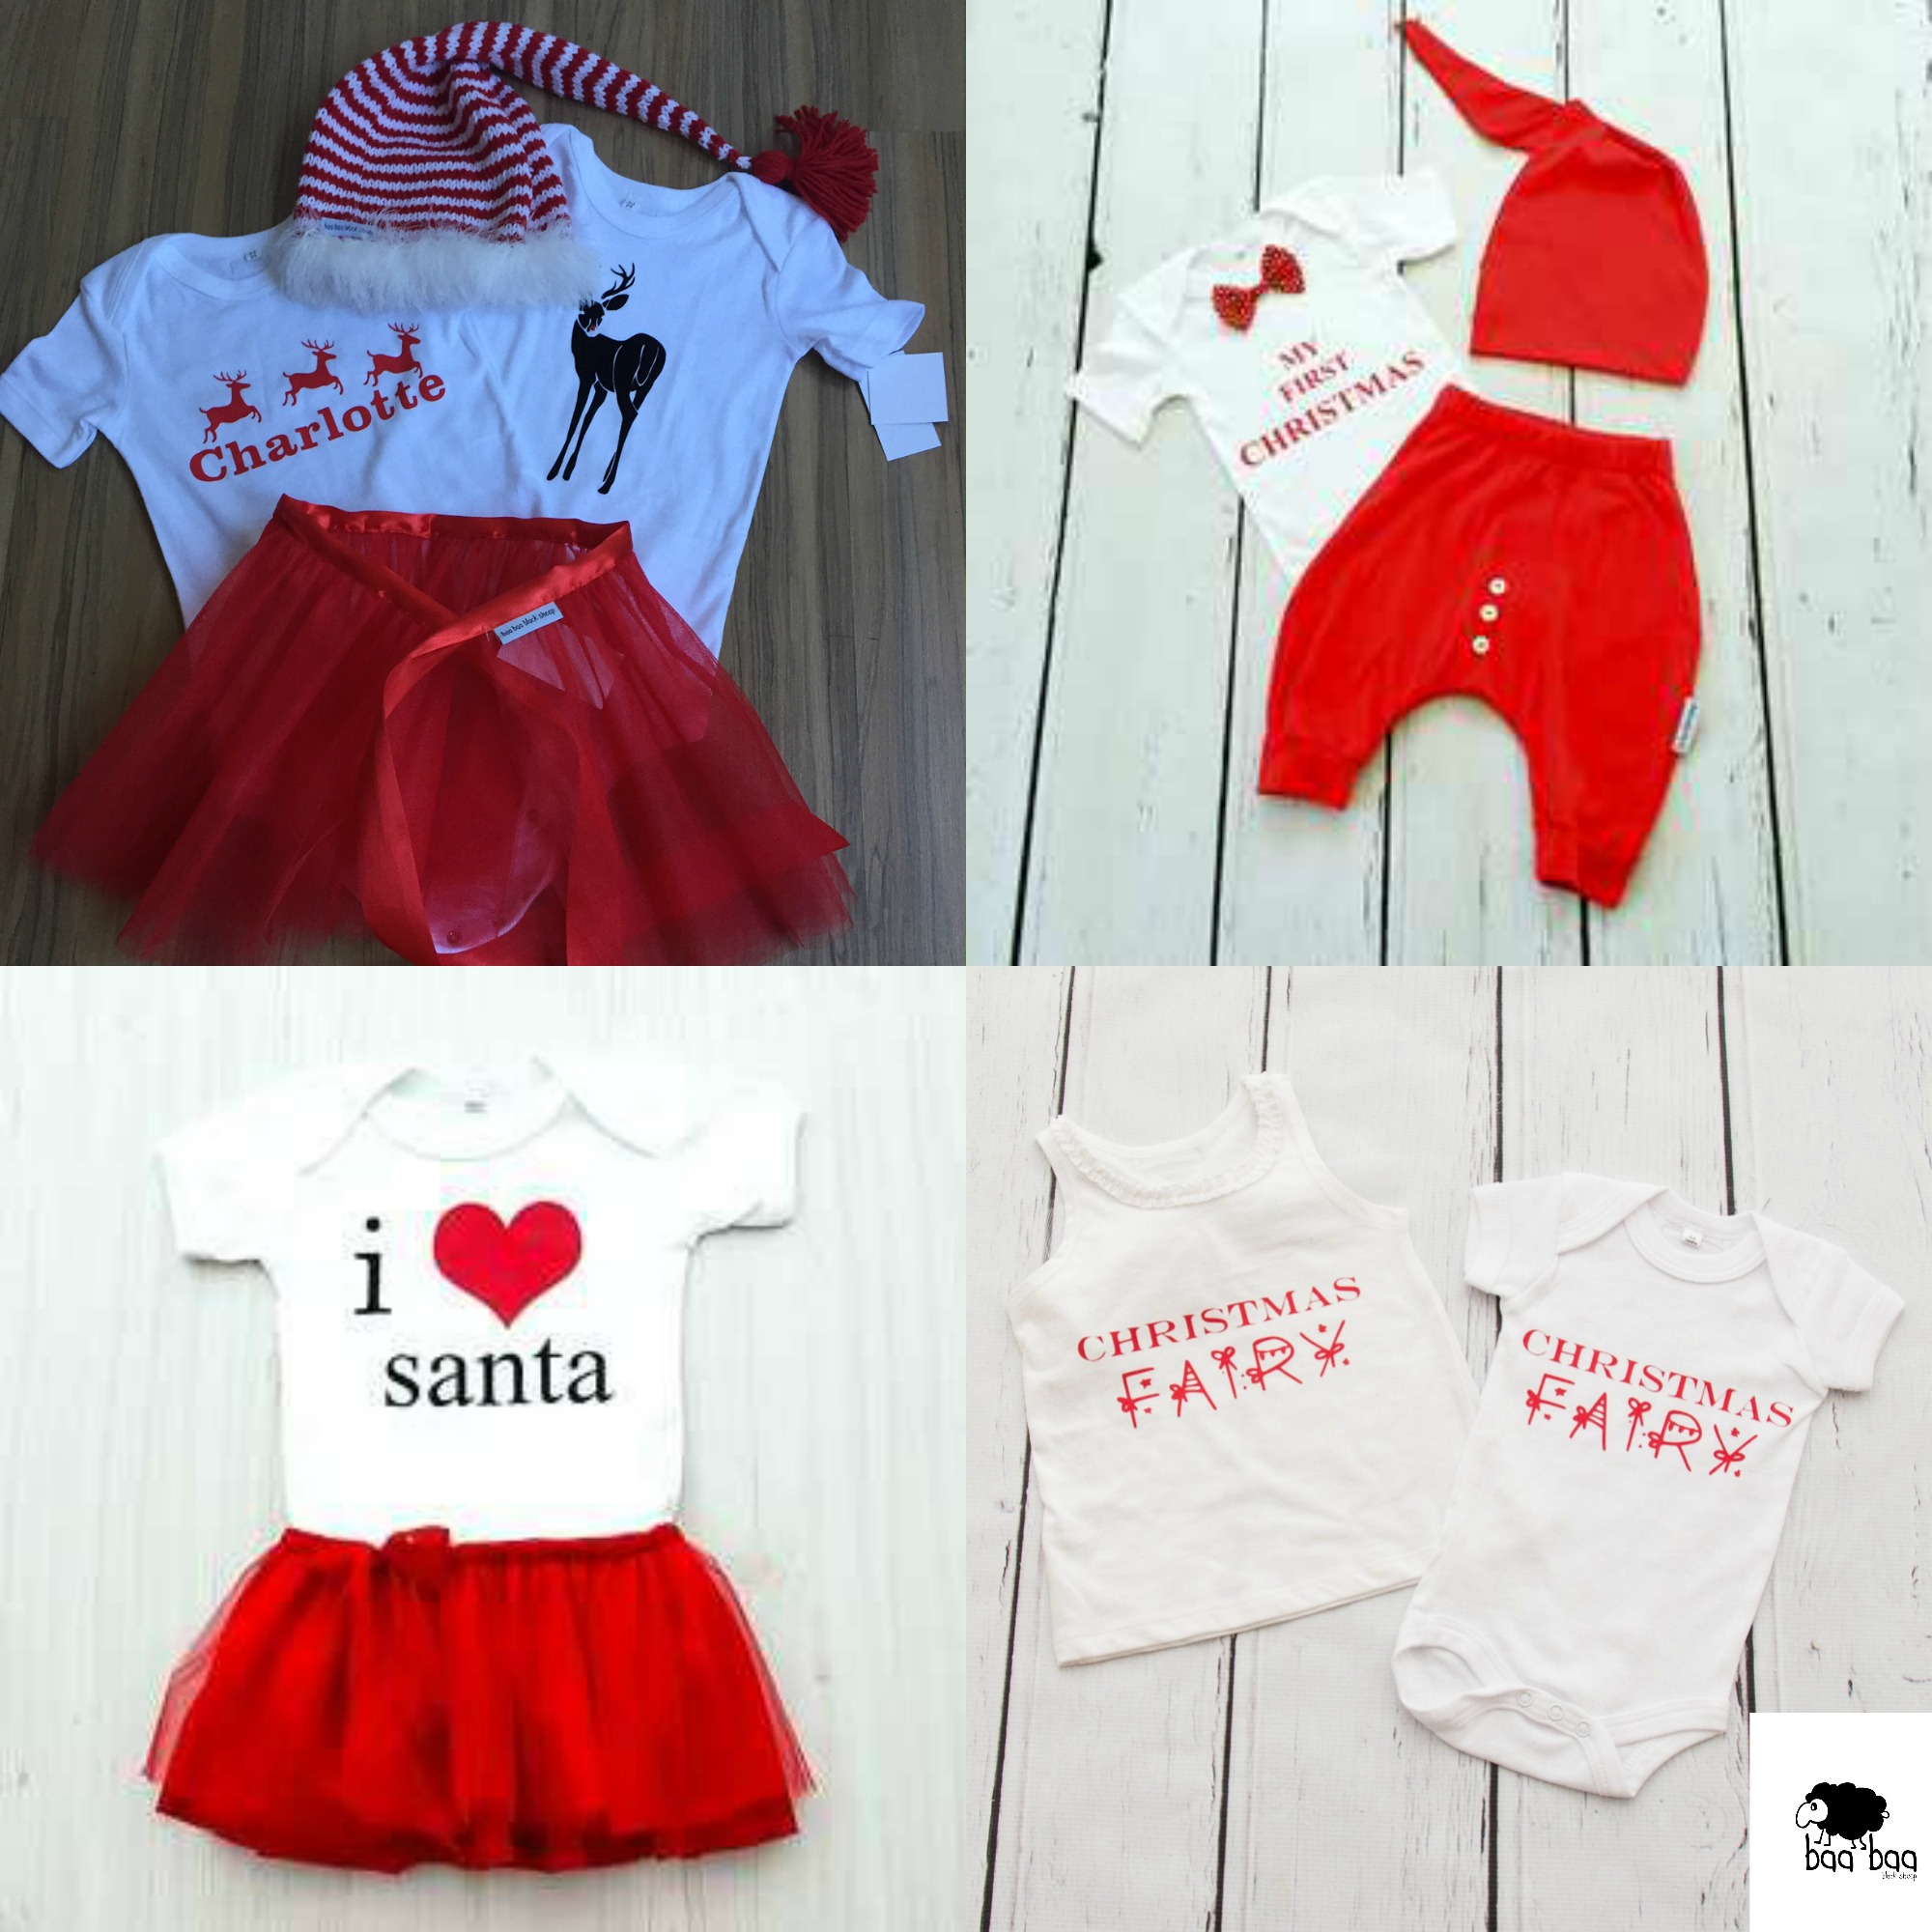 59ba213f01c All I want for Christmas is to dress up my toddler - Pregnant in ...